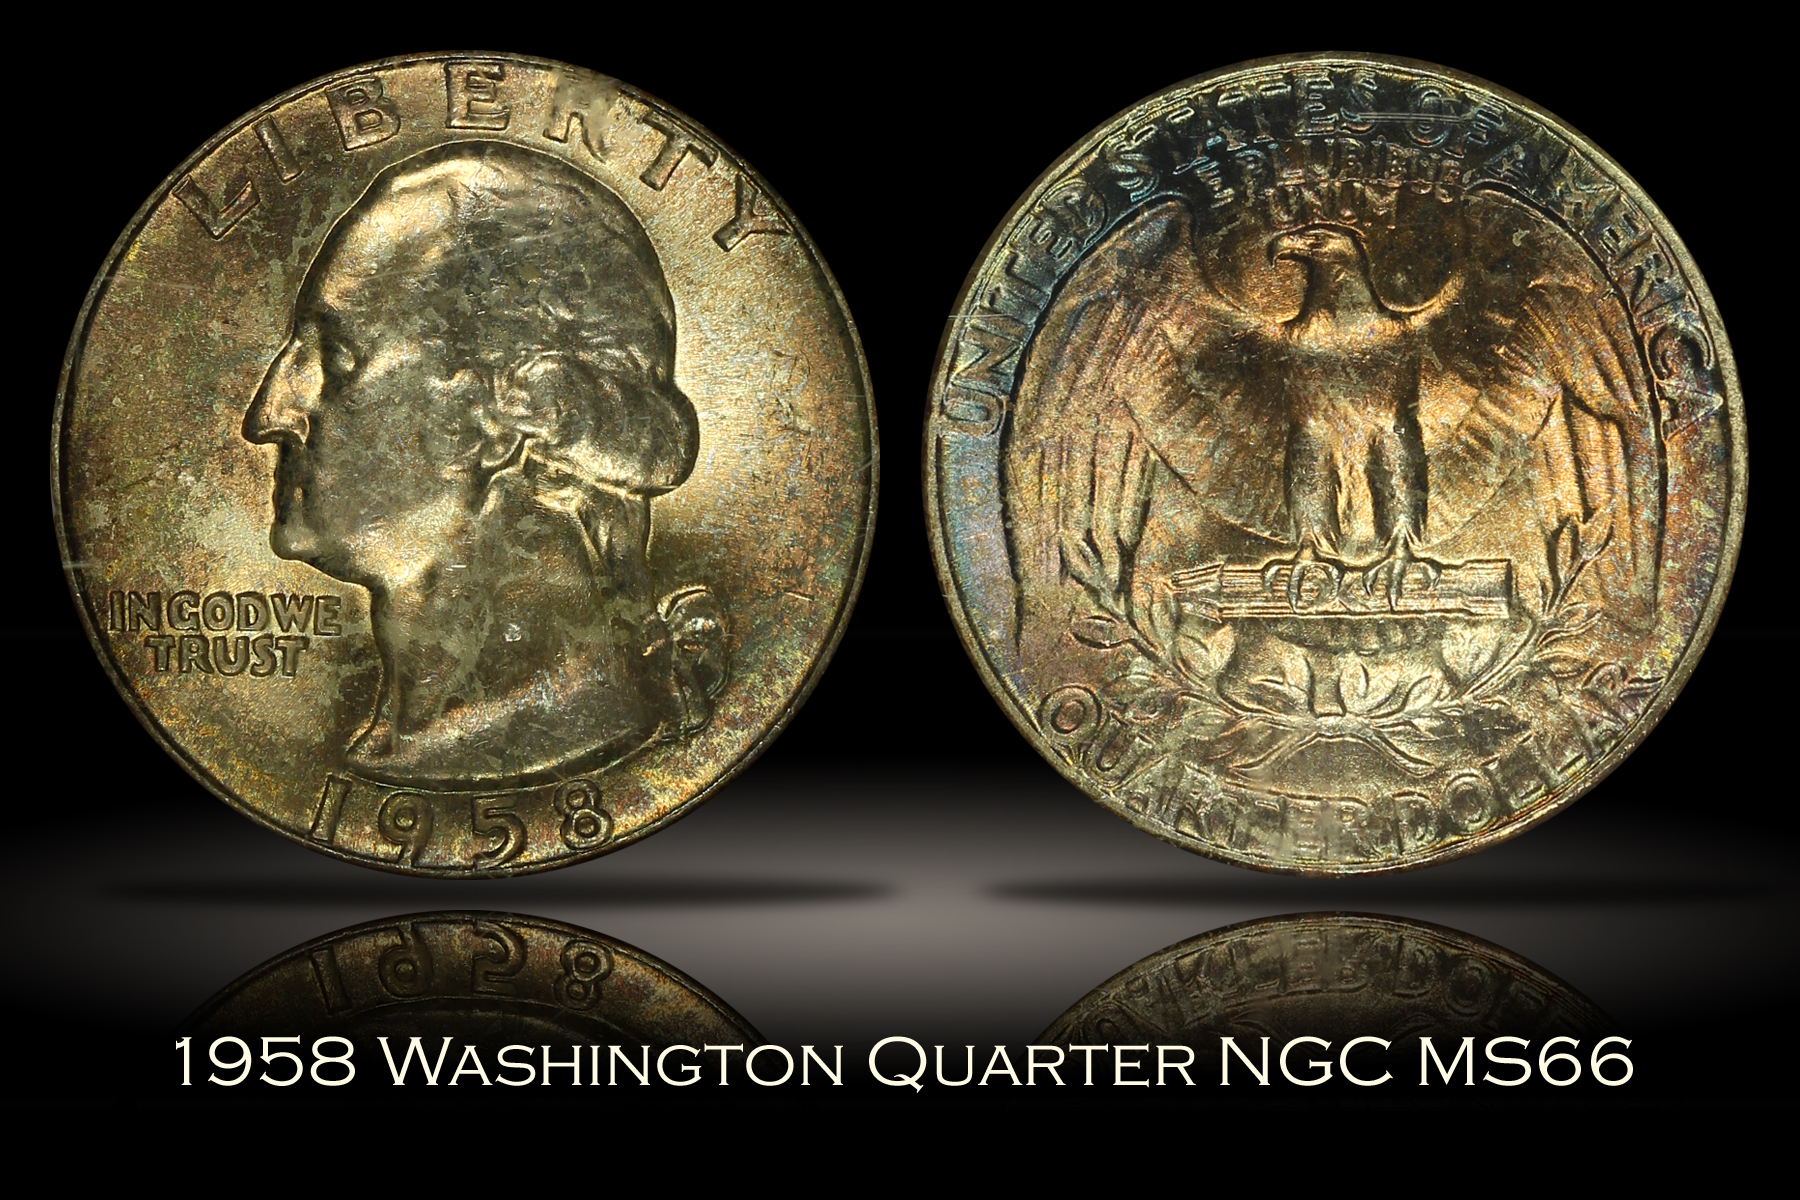 1958 Washington Quarter NGC MS66